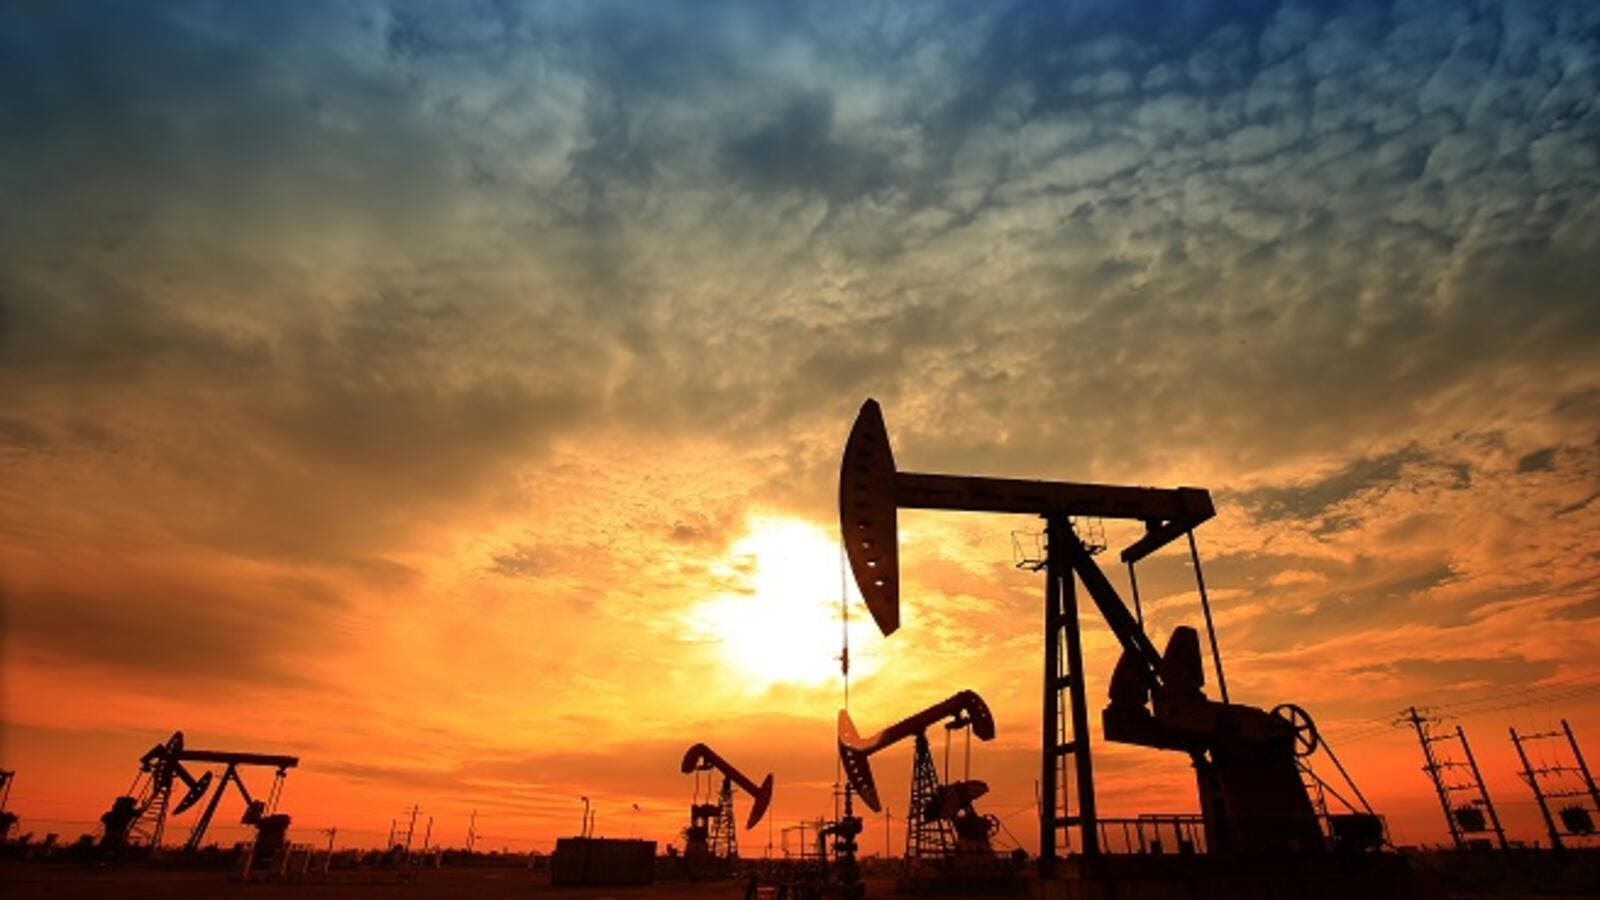 India's oil imports will be reduced, but will still rank up more than a million barrels per month. (Shutterstock)